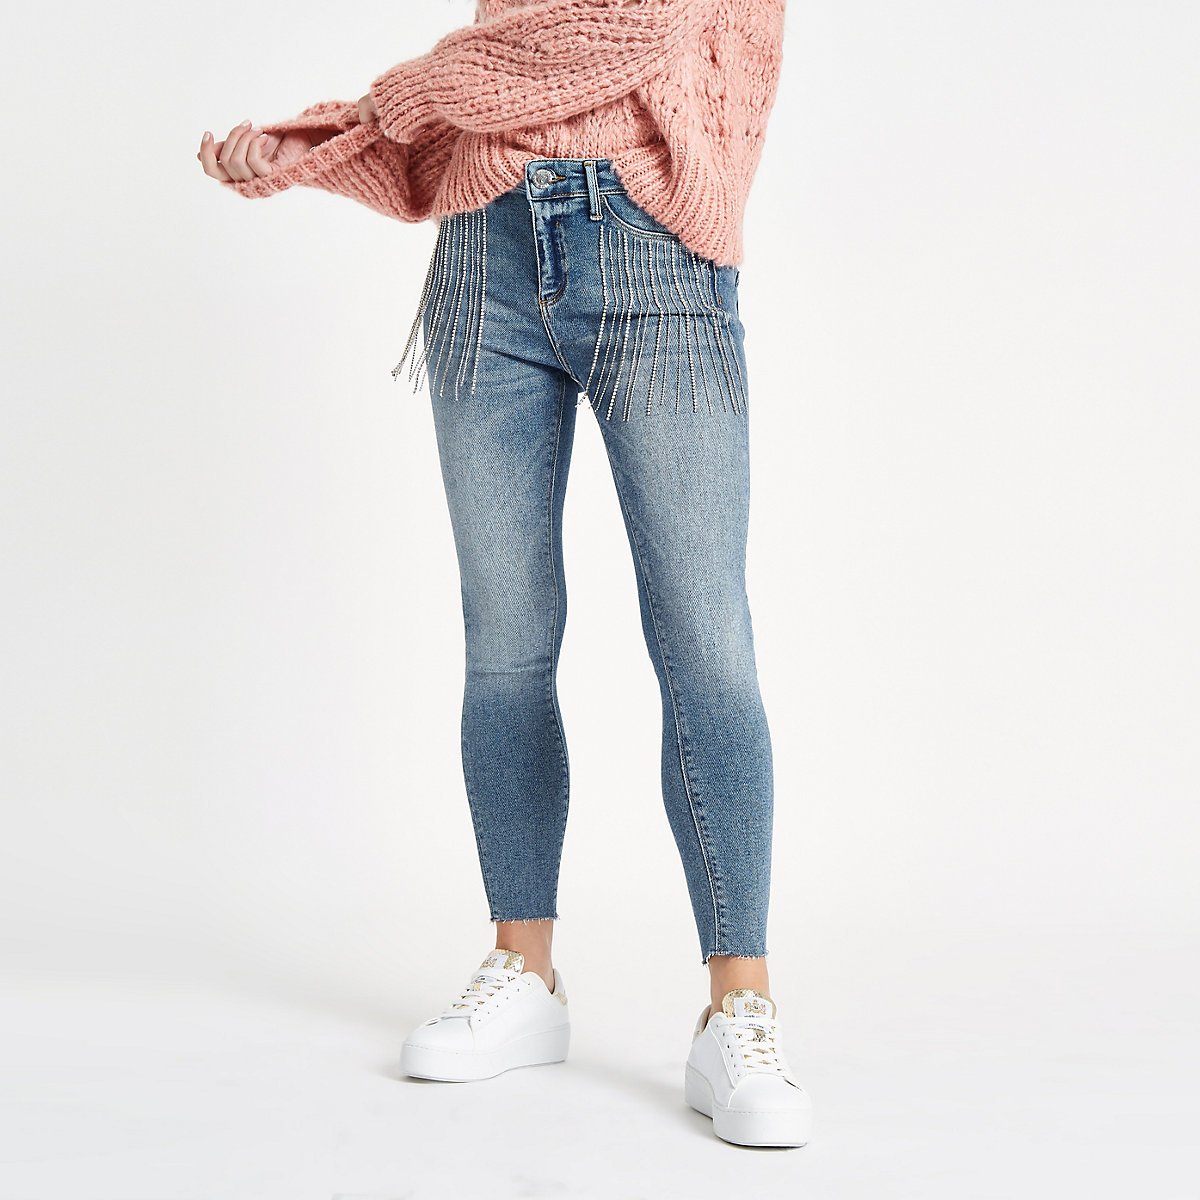 Petite Molly embellished Jeans